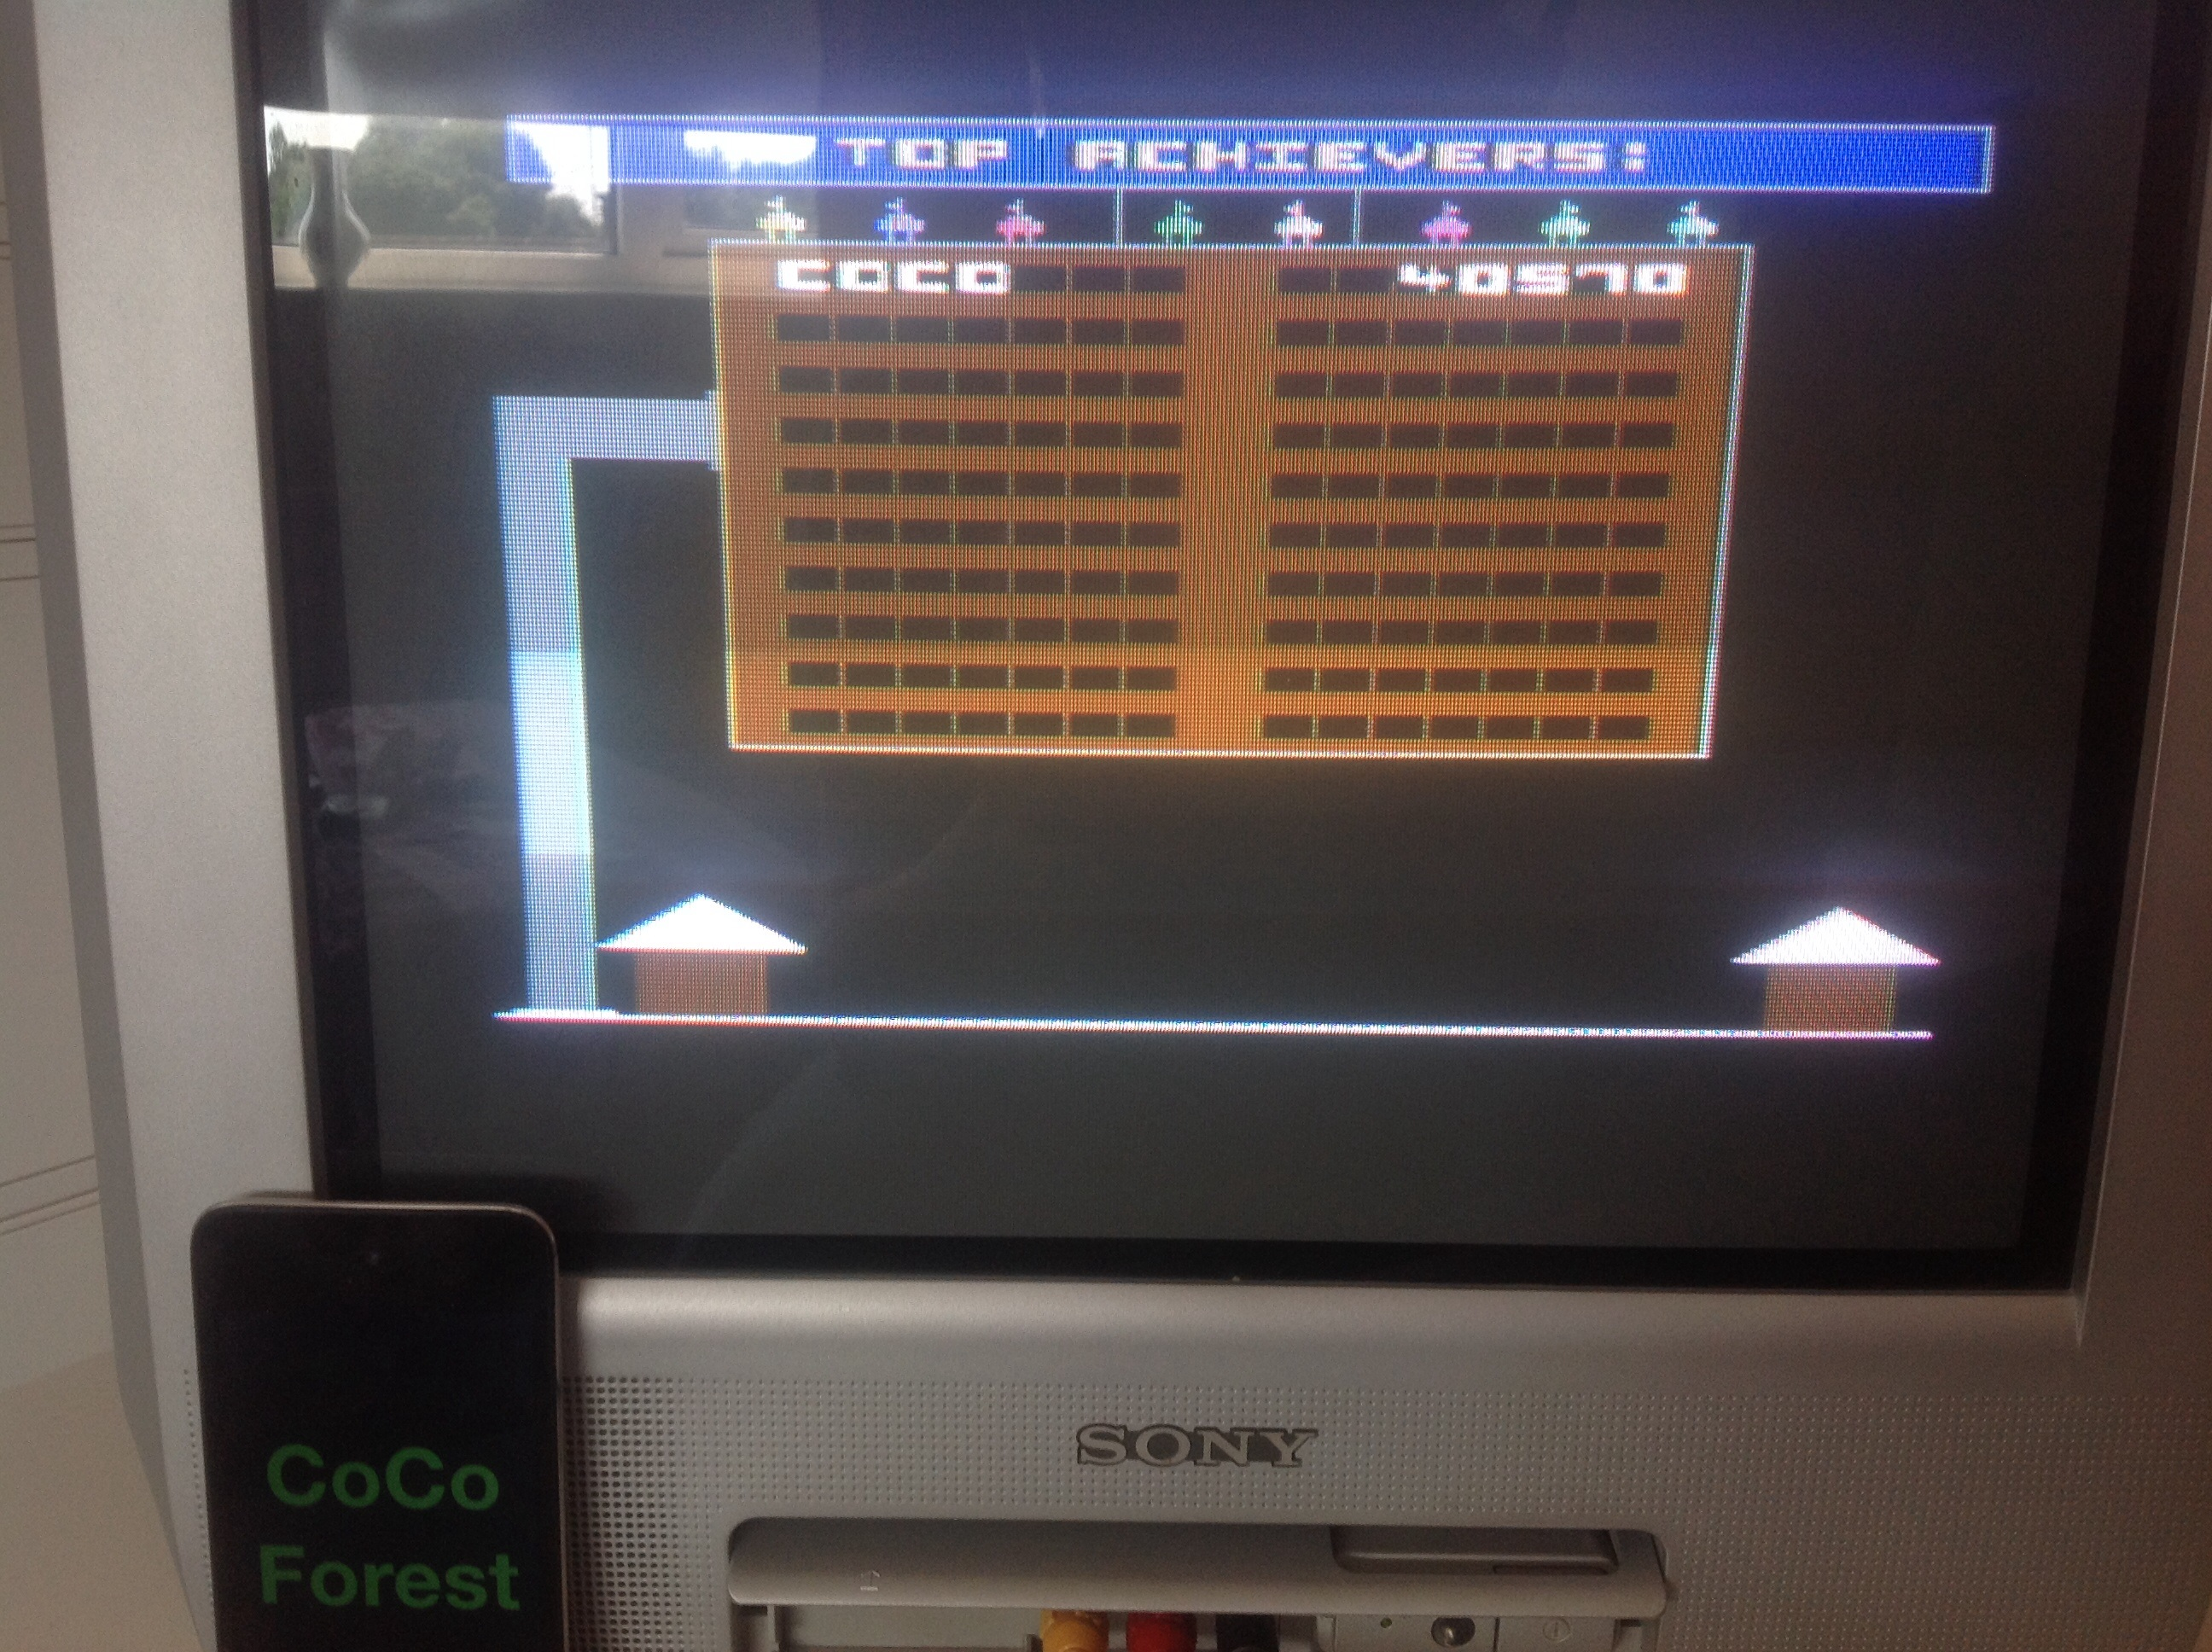 CoCoForest: Bounty Bob Strikes Back! (Commodore 64) 40,570 points on 2014-08-01 06:48:23